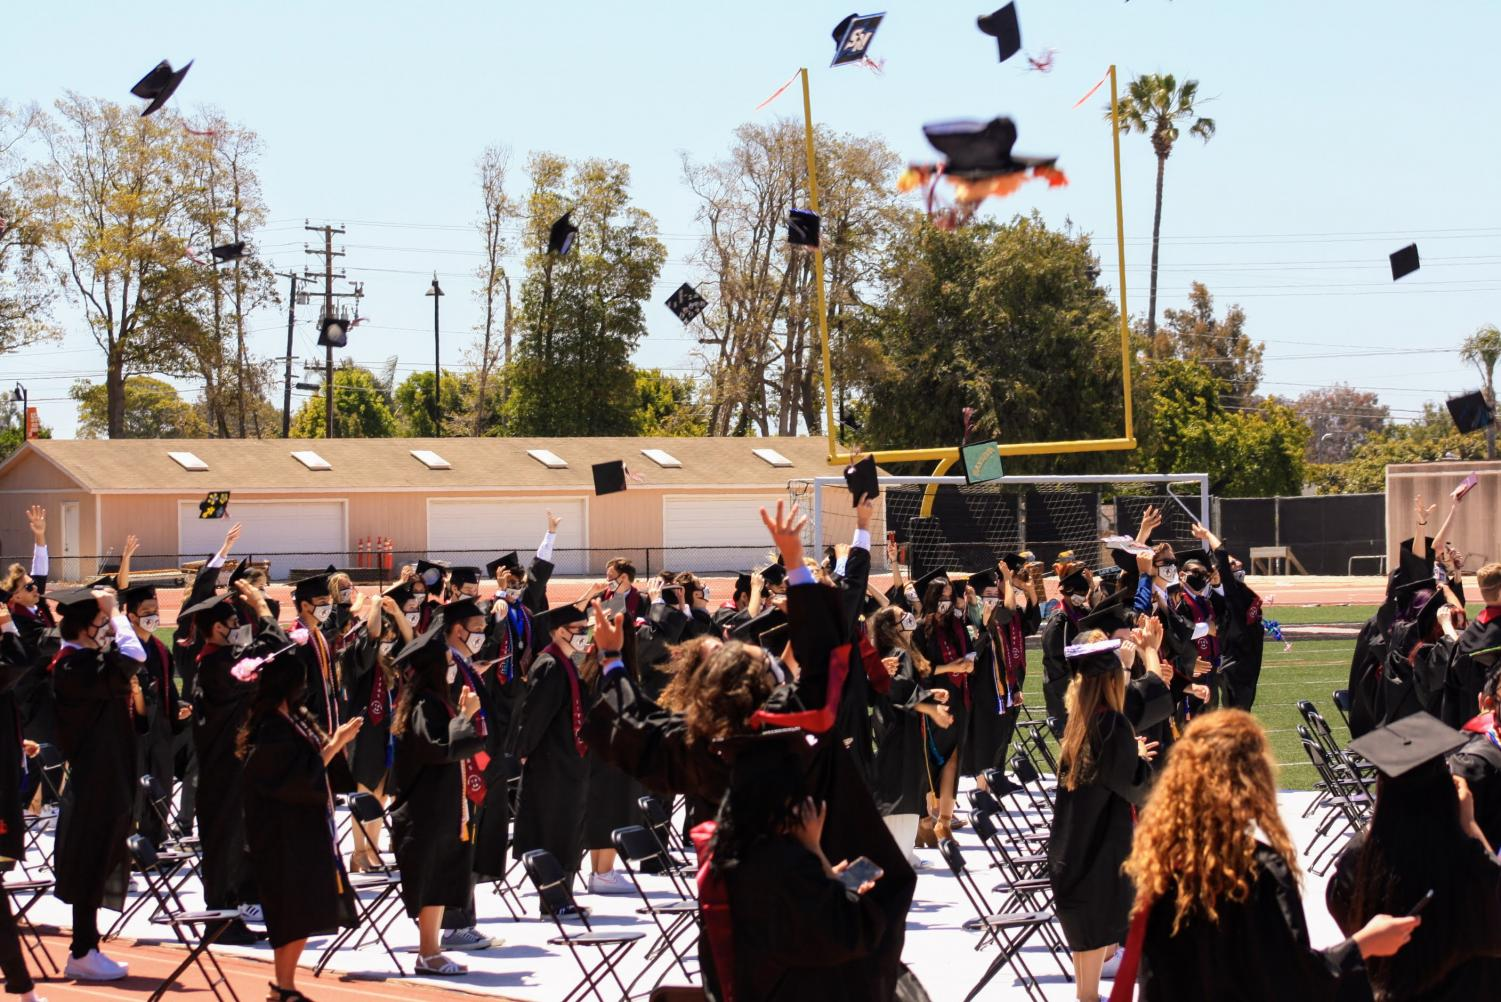 Class of 2021 graduates throw their caps into the air to celebrate the end of their high school experience.